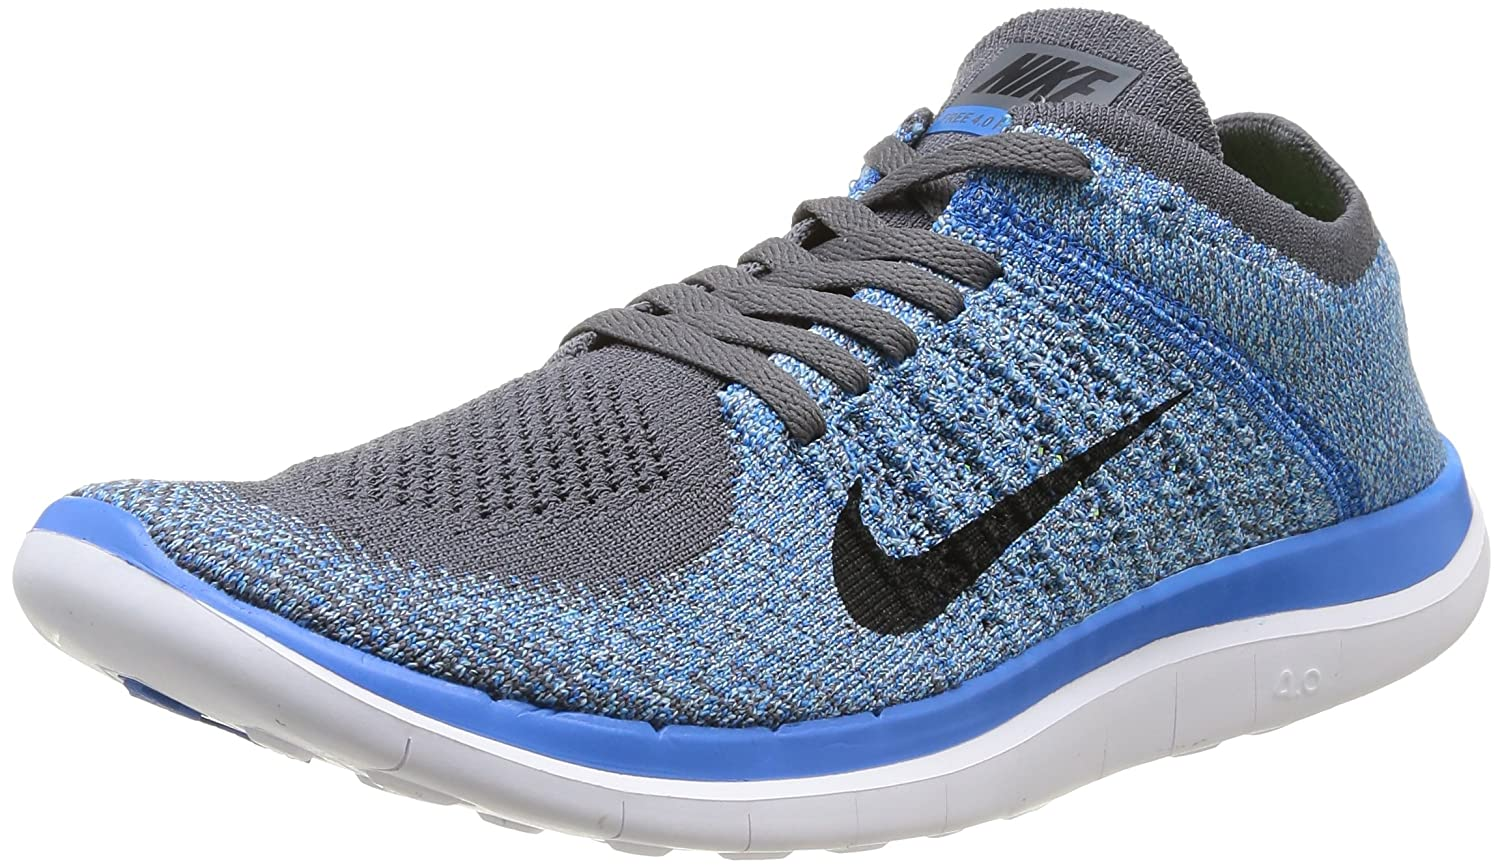 detailed look 13e13 40598 Nike Free 4.0 Flyknit Men s Running Shoes